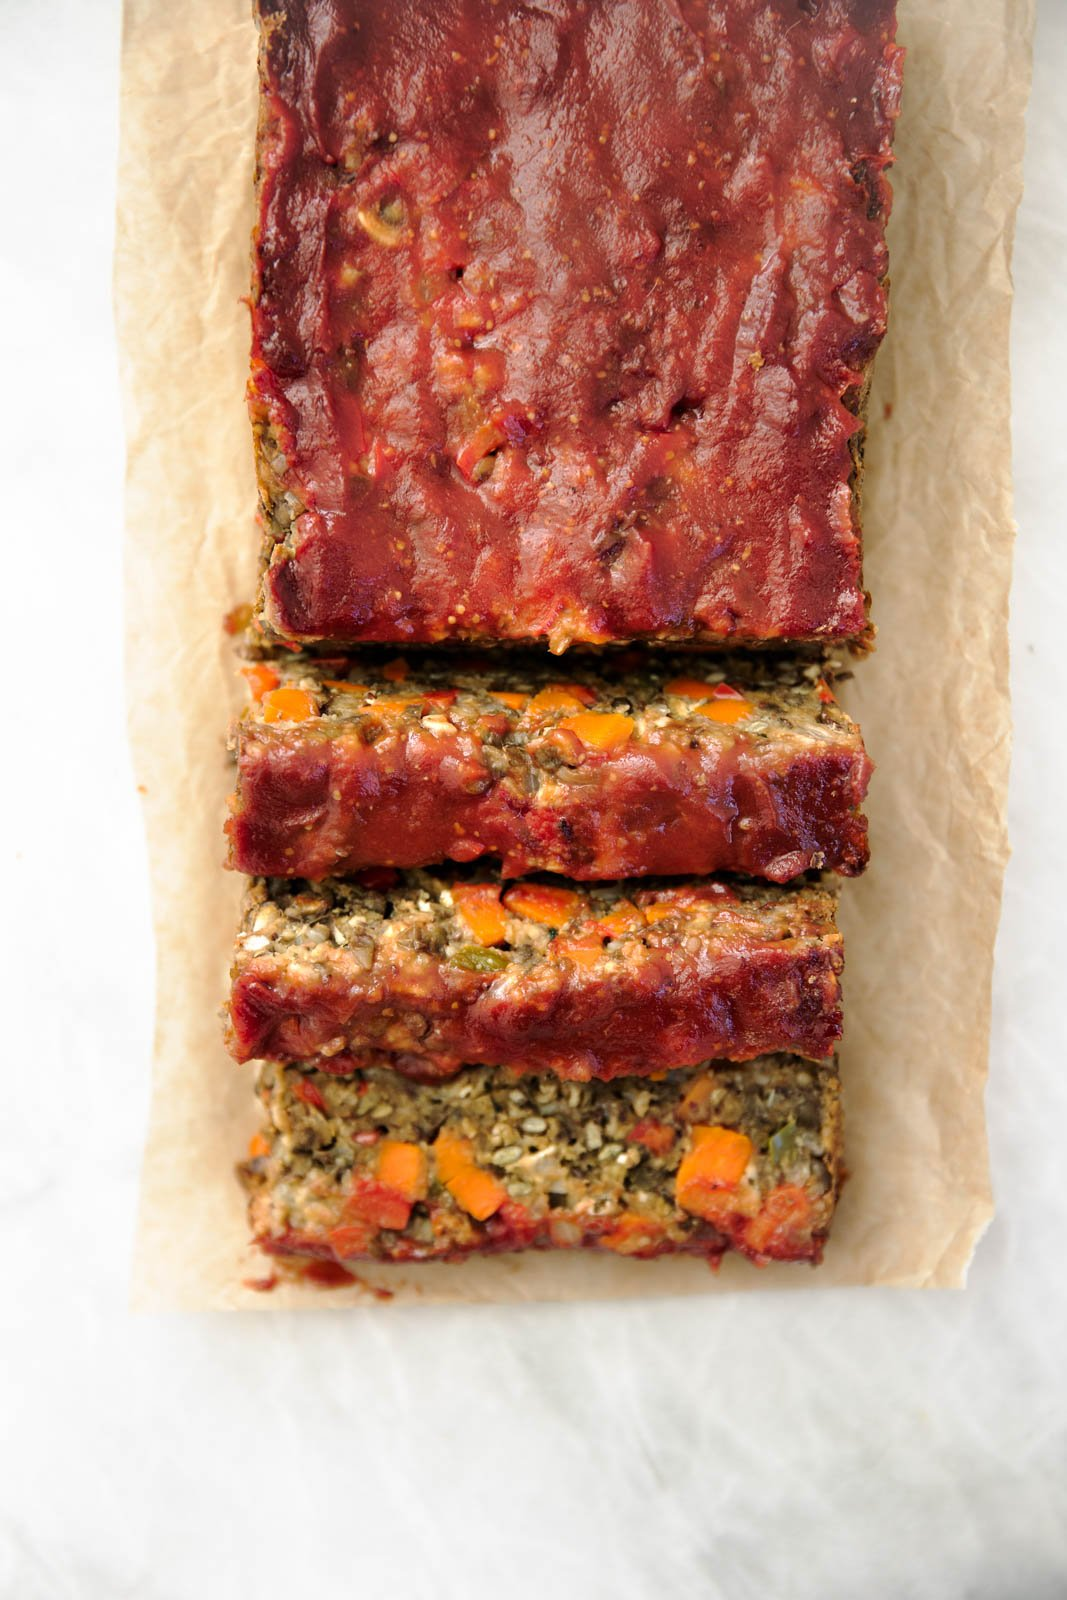 A vegan and gluten free vegetarian lentil loaf made with lentils and delicious spices!